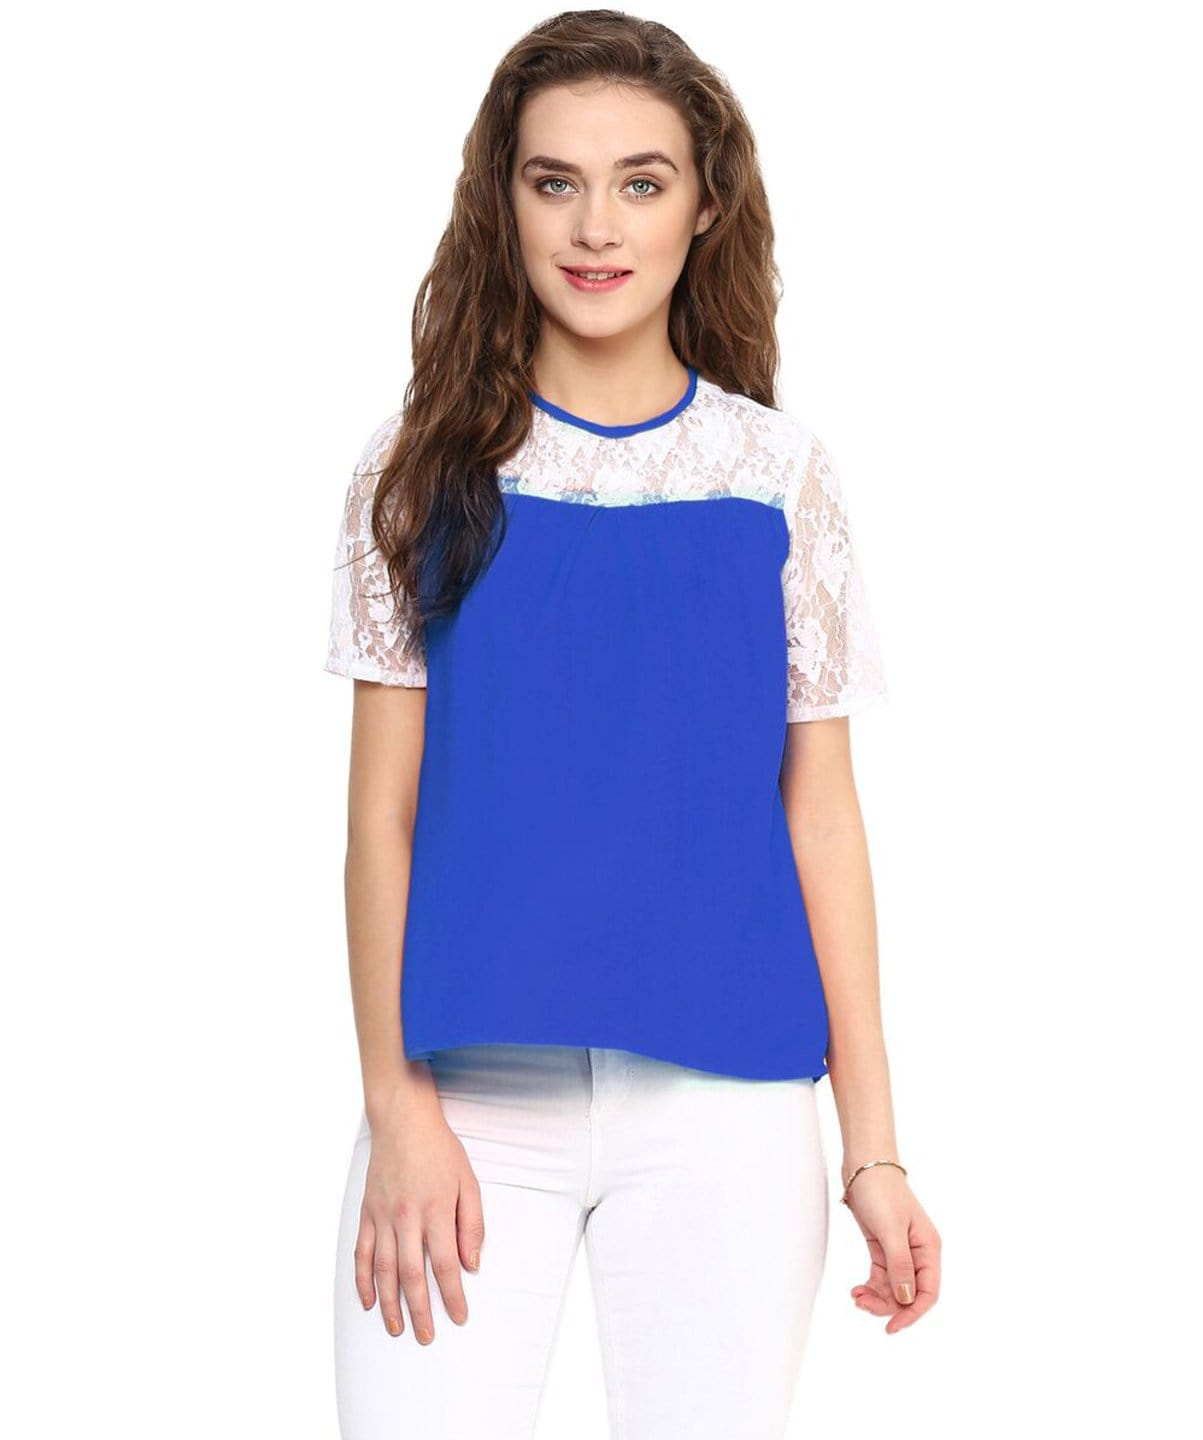 Solid Blue & White Lace Crepe Top - Uptownie